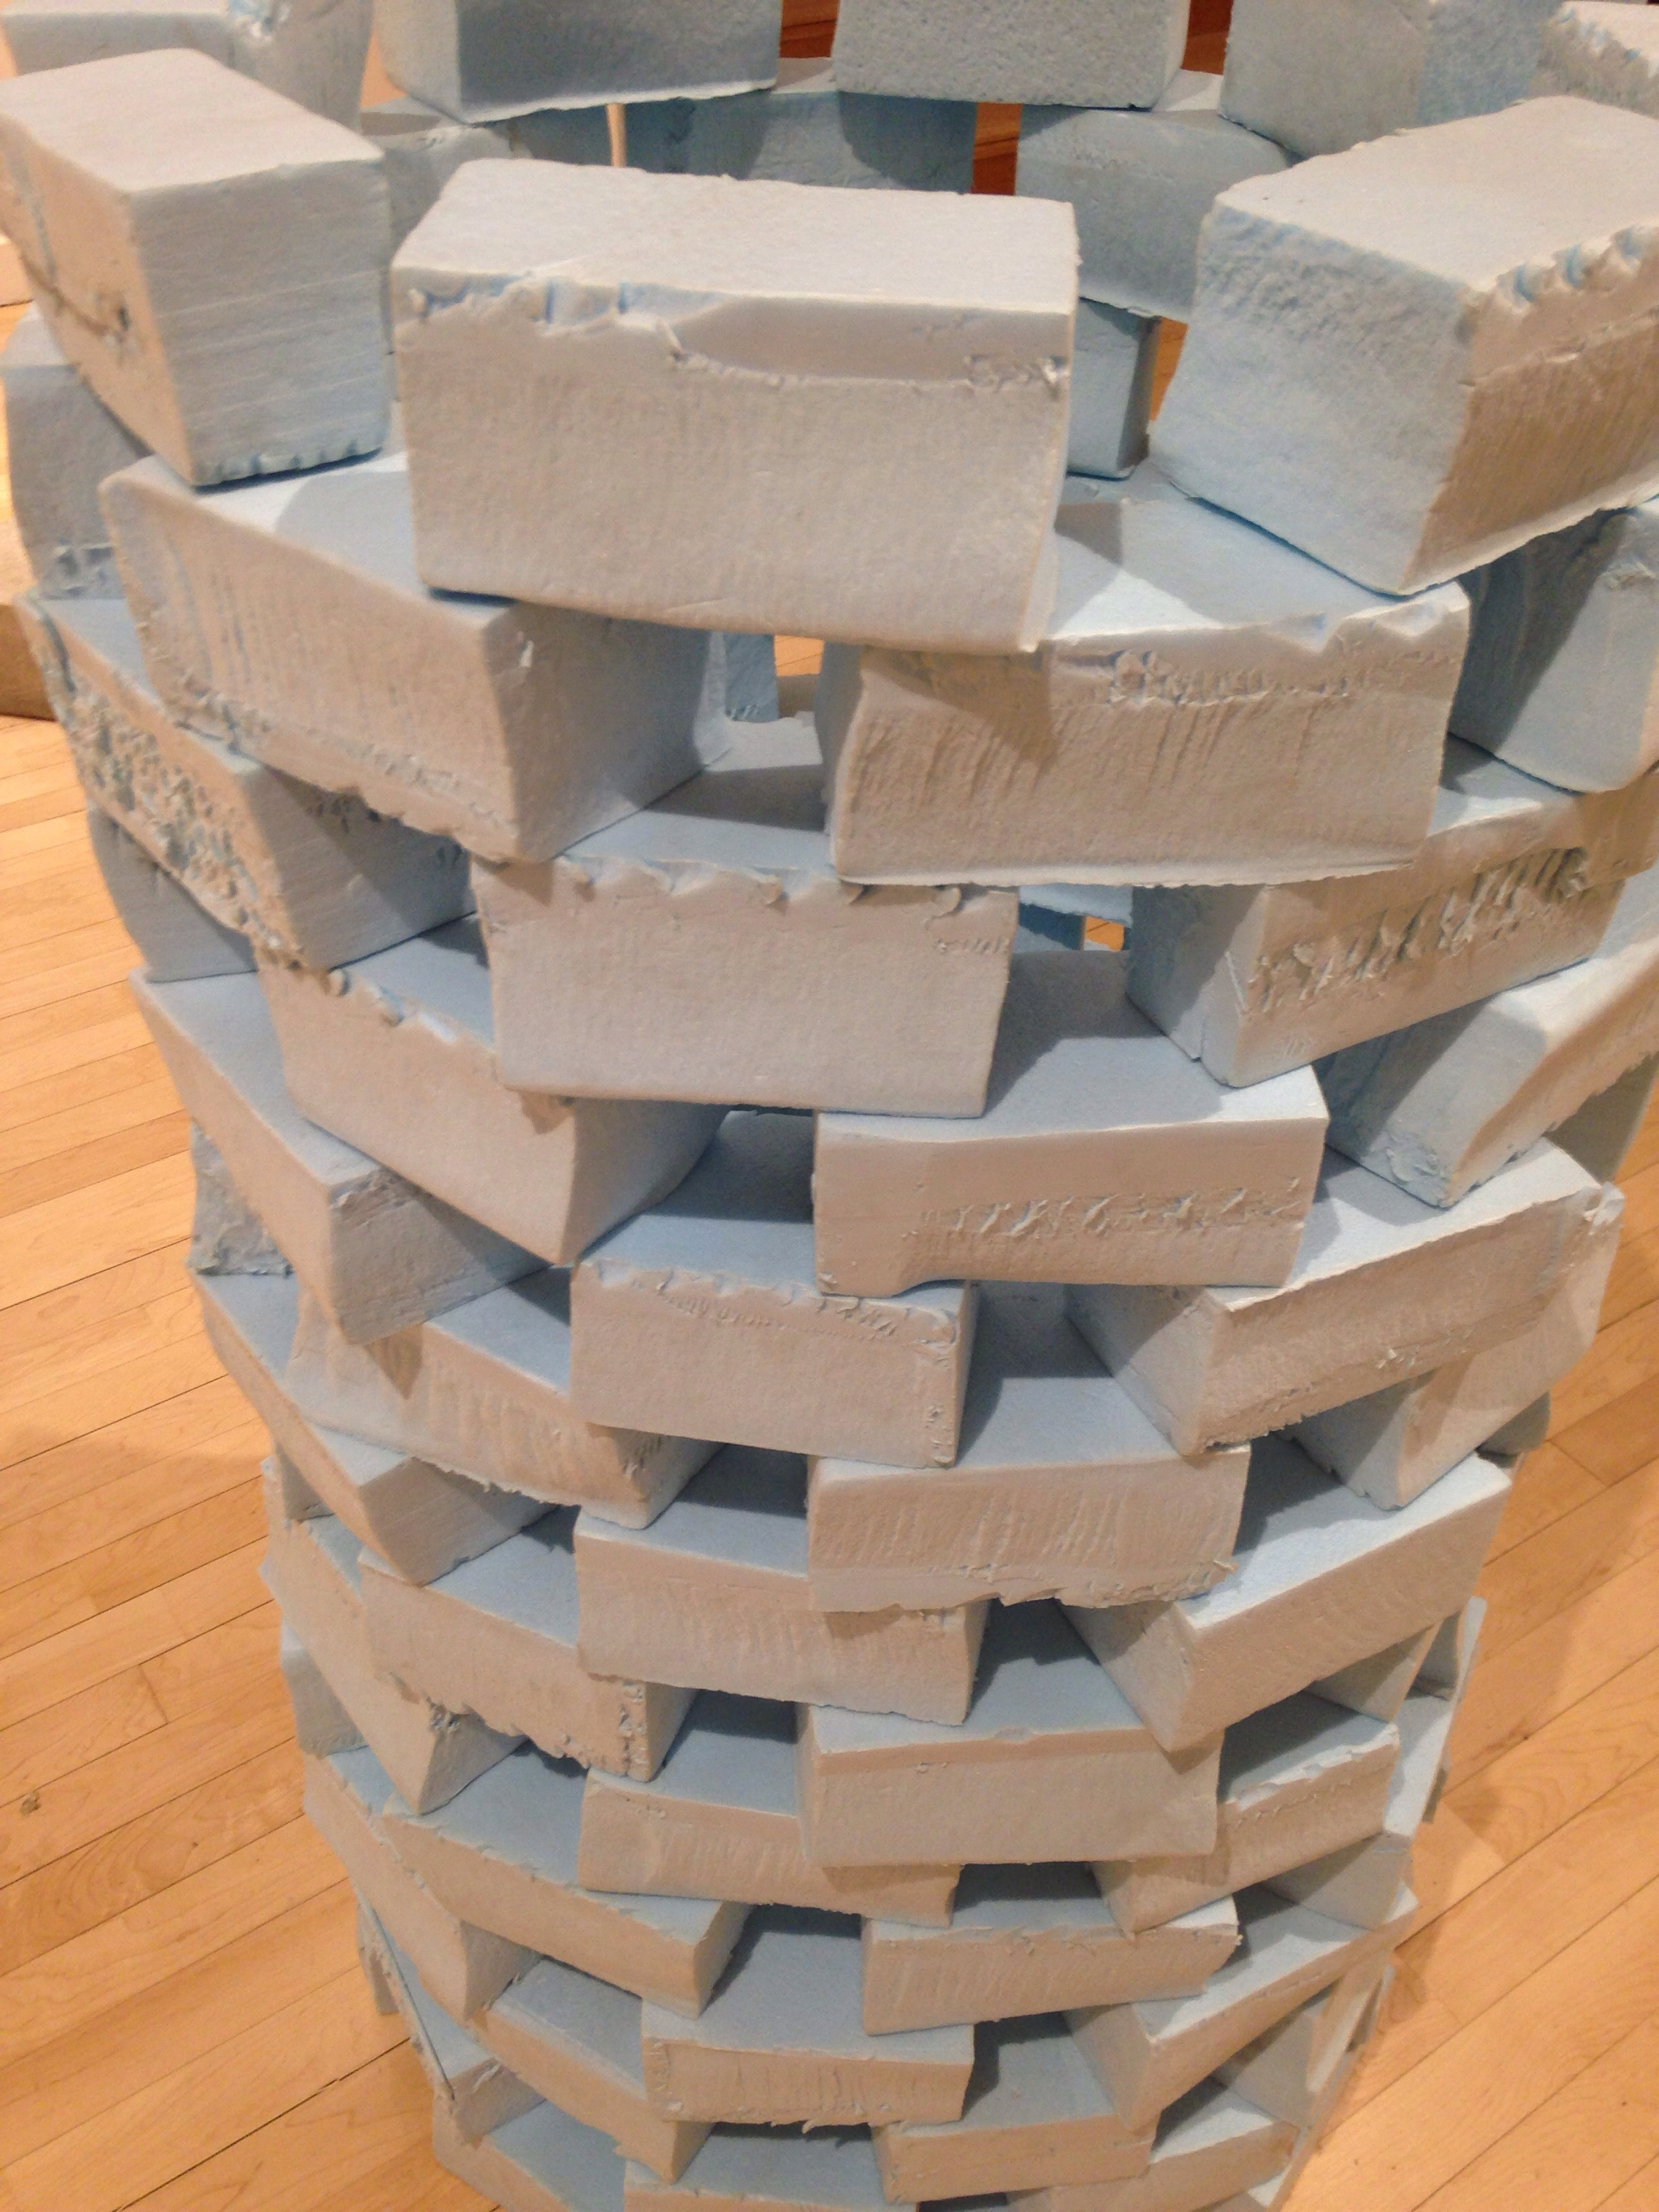 A tower of cartons